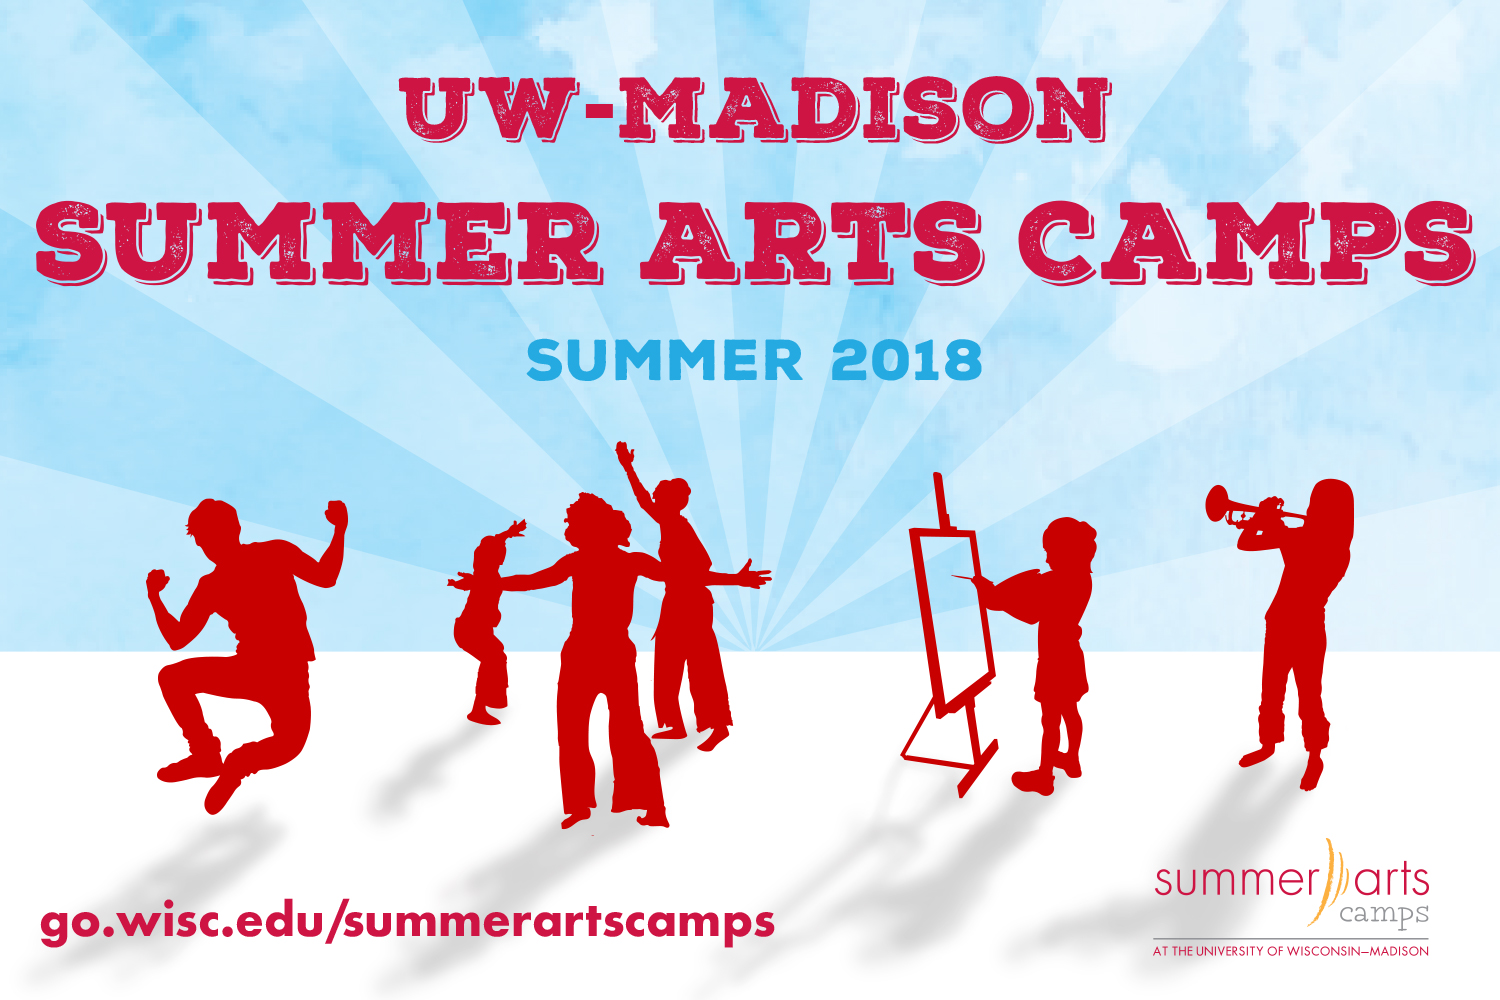 UW–Madison Summer Arts Camps Summer 2018 go.wisc.edu/summerartscamps